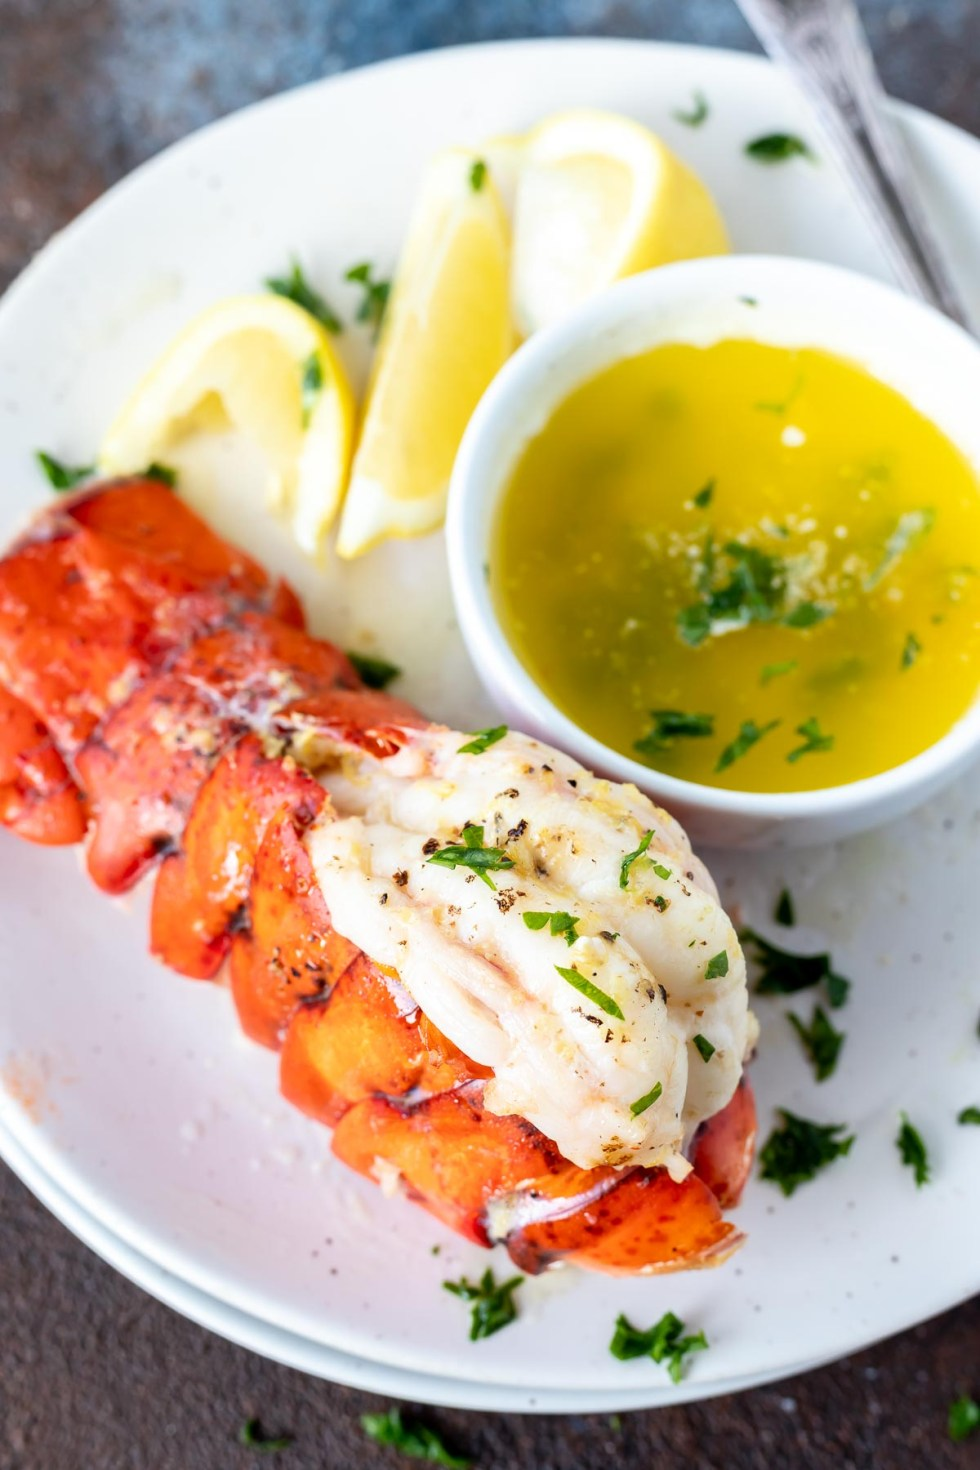 cooked lobster tail and melted butter served on white plate